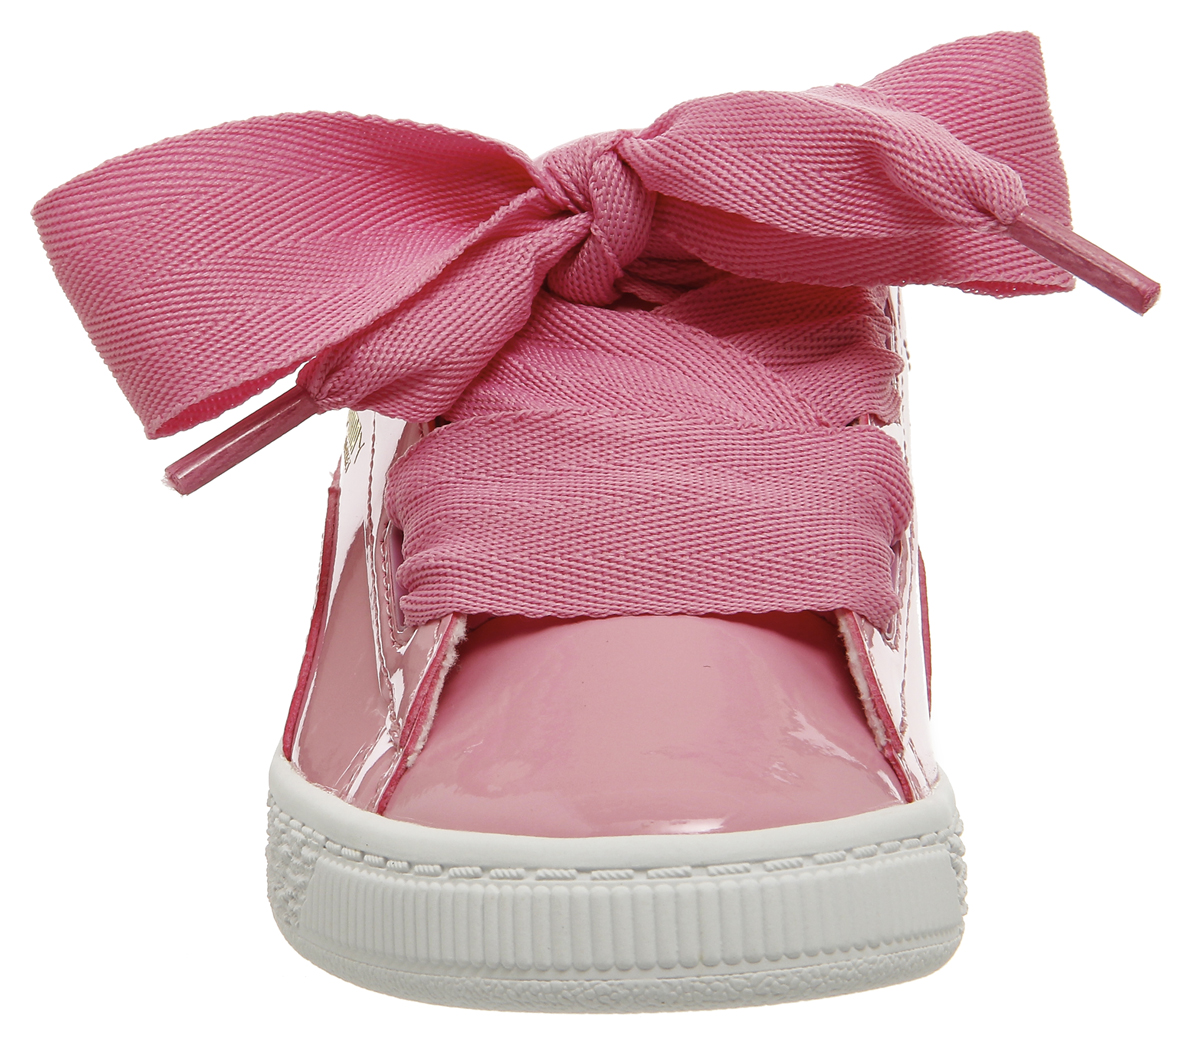 PUMA Basket Heart Patent Junior Trainers Size 1. About this product.  Picture 1 of 7  Picture 2 of 7  Picture 3 of 7 ... bfcdf063cb3c2